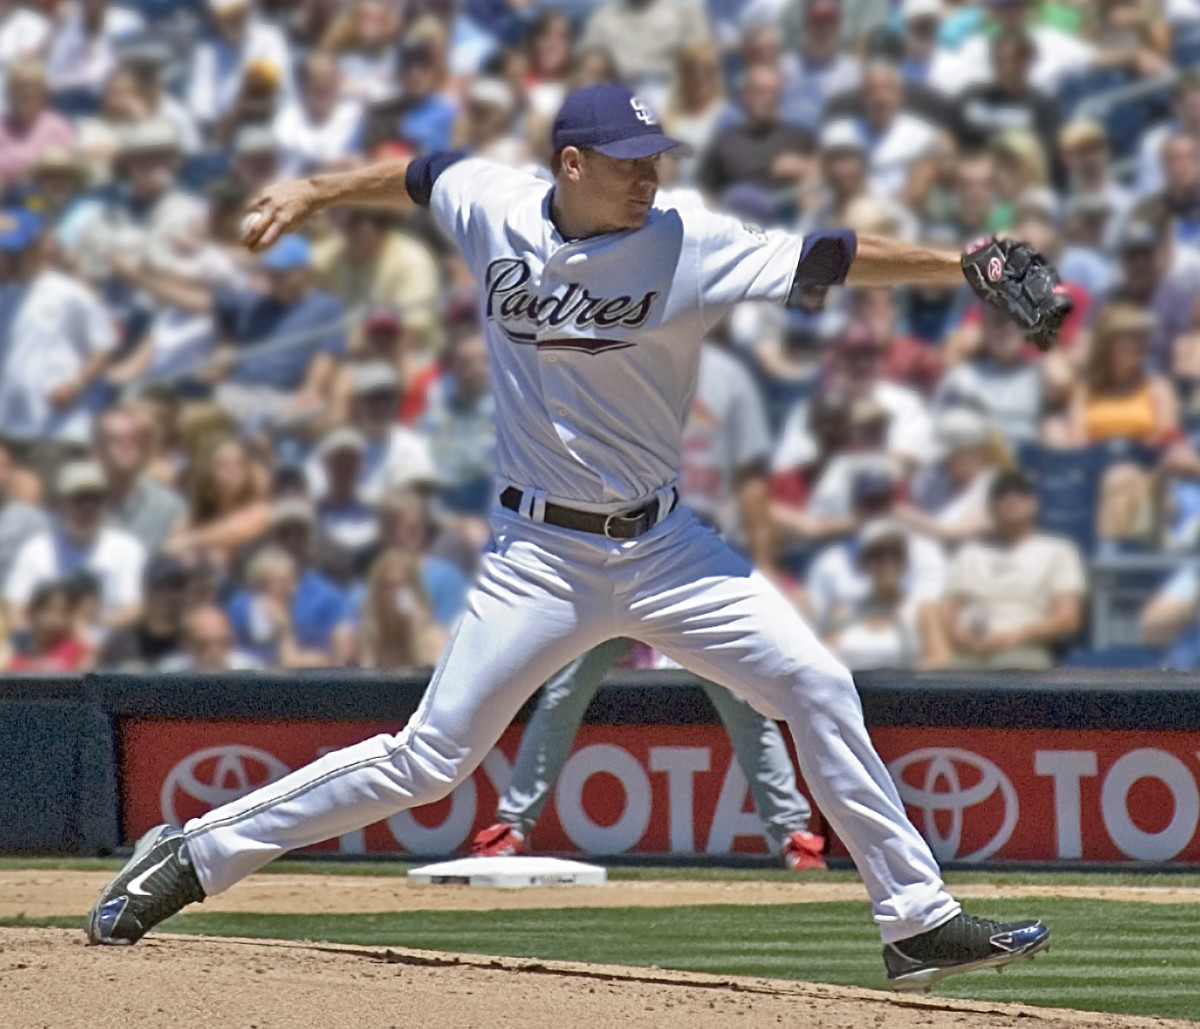 Former San Diego Padres ace Jake Peavy pitches during the 2006 season. He was the 2007 National League Cy Young Award winner after winning the pitcher's Triple Crown.